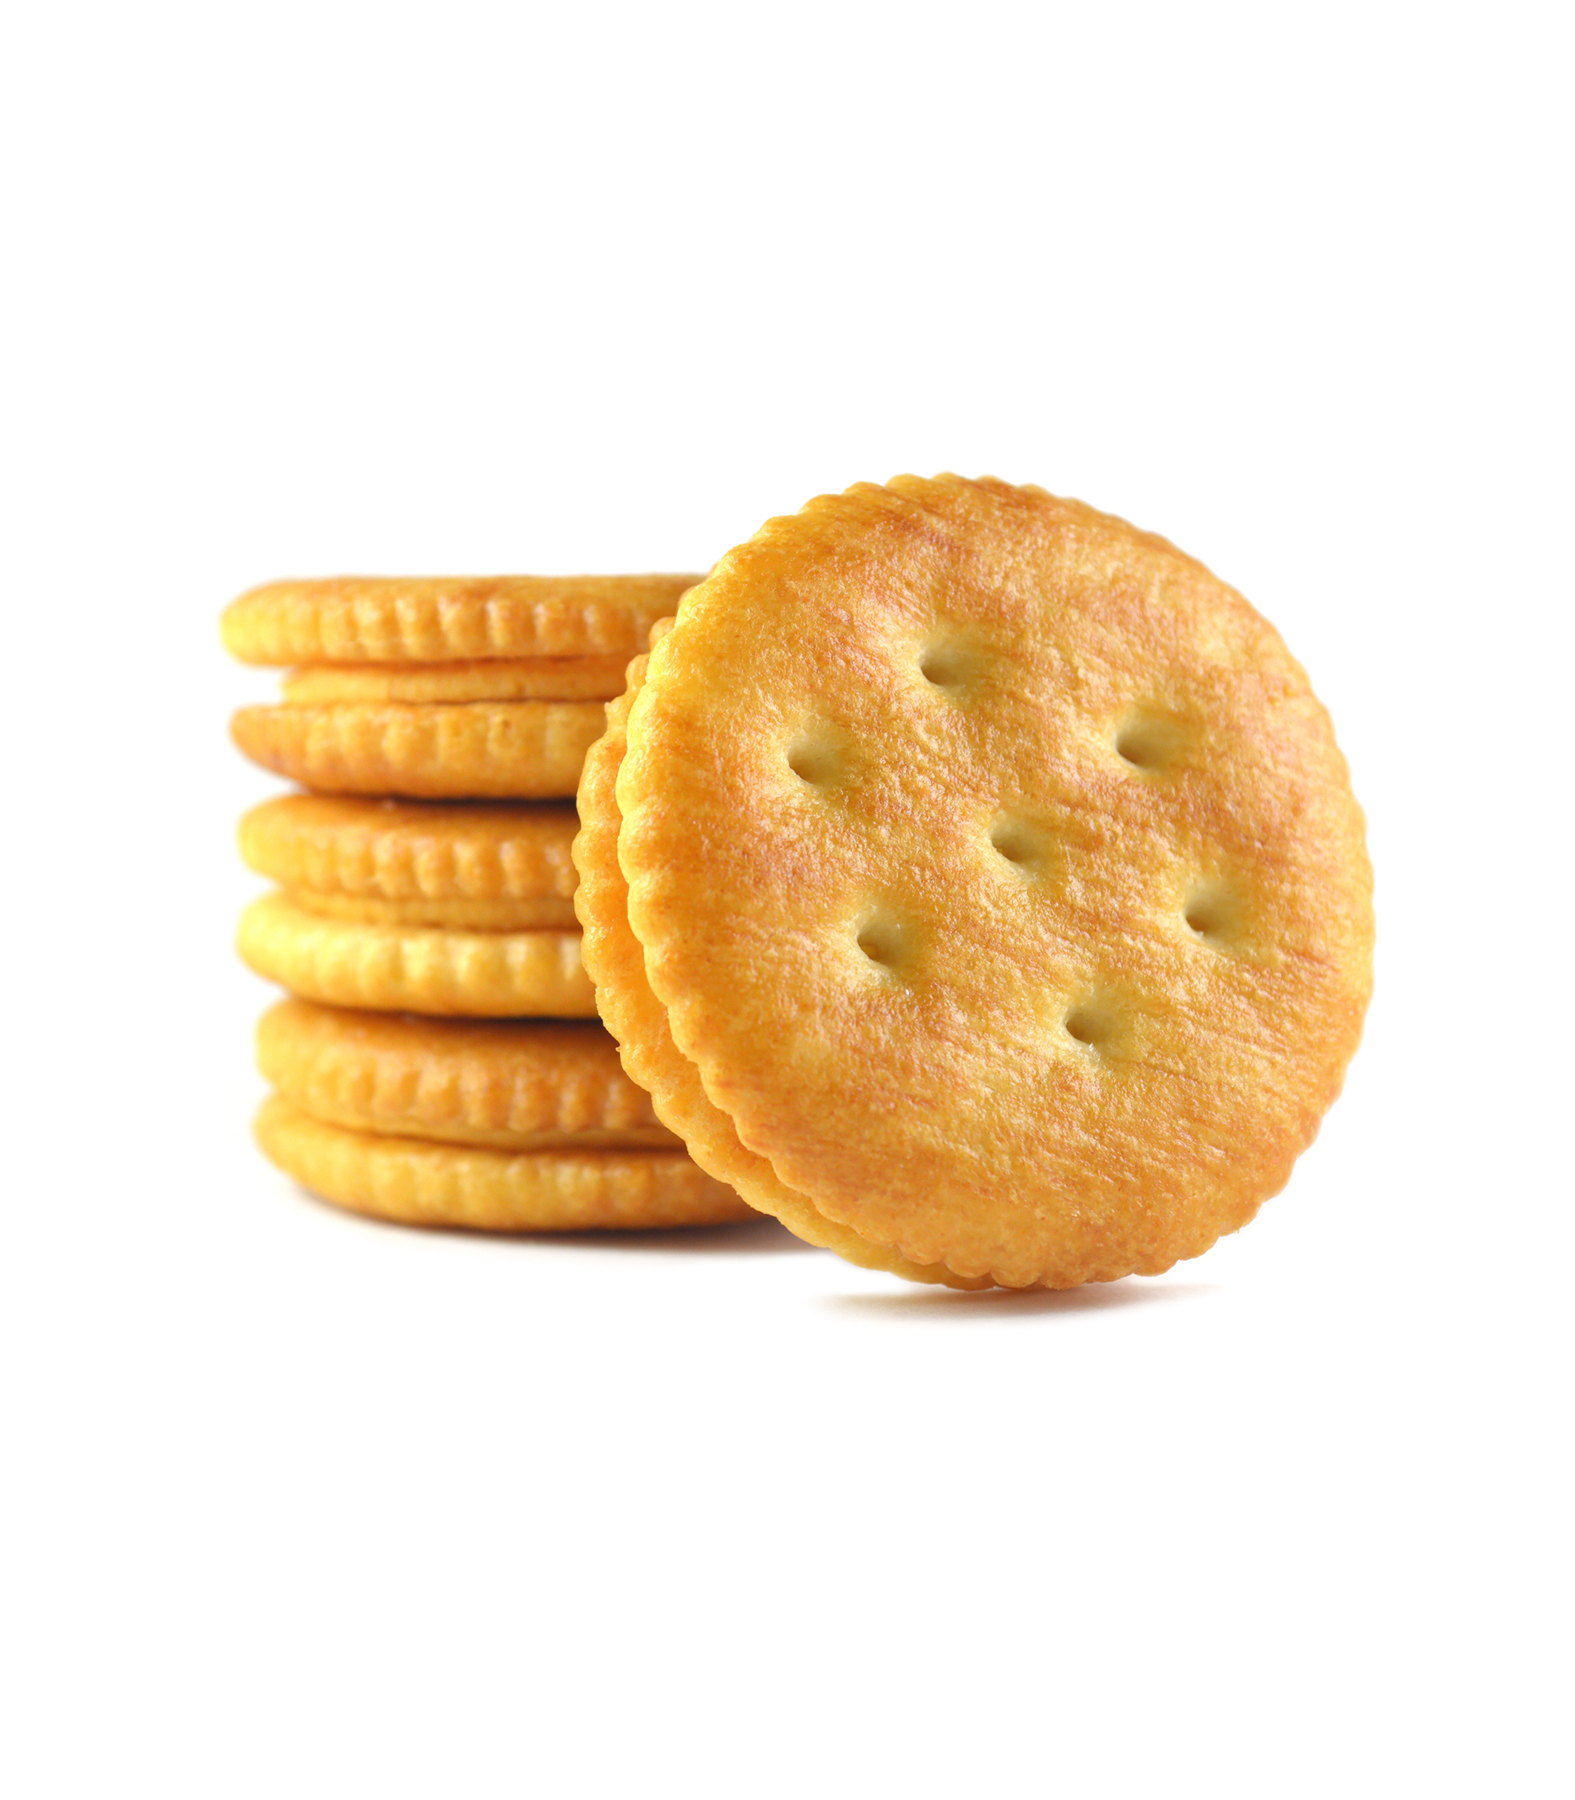 Sandwich crackers